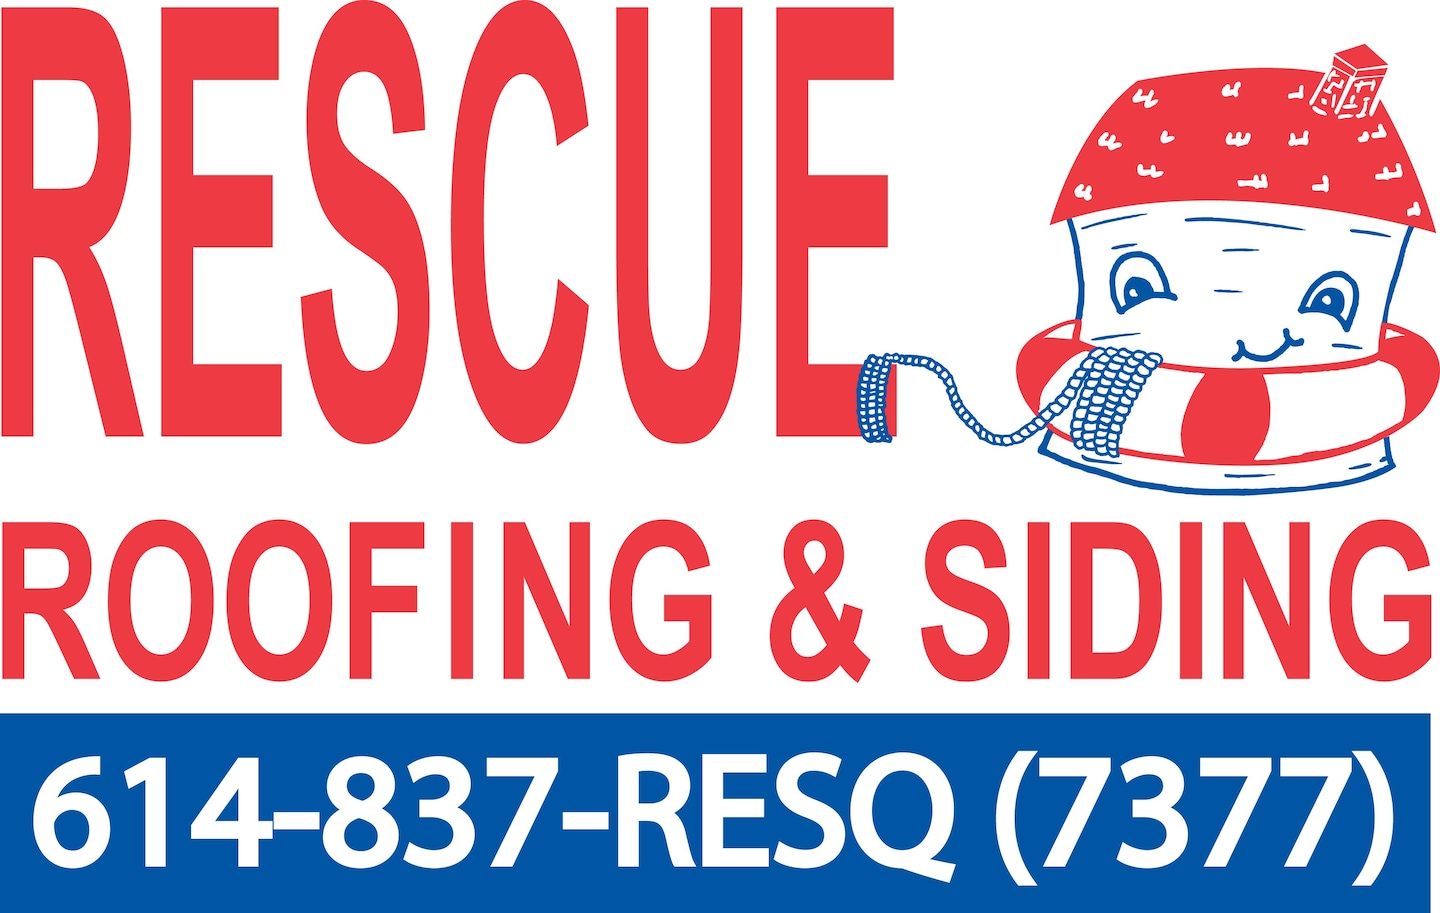 Rescue Roofing & Siding